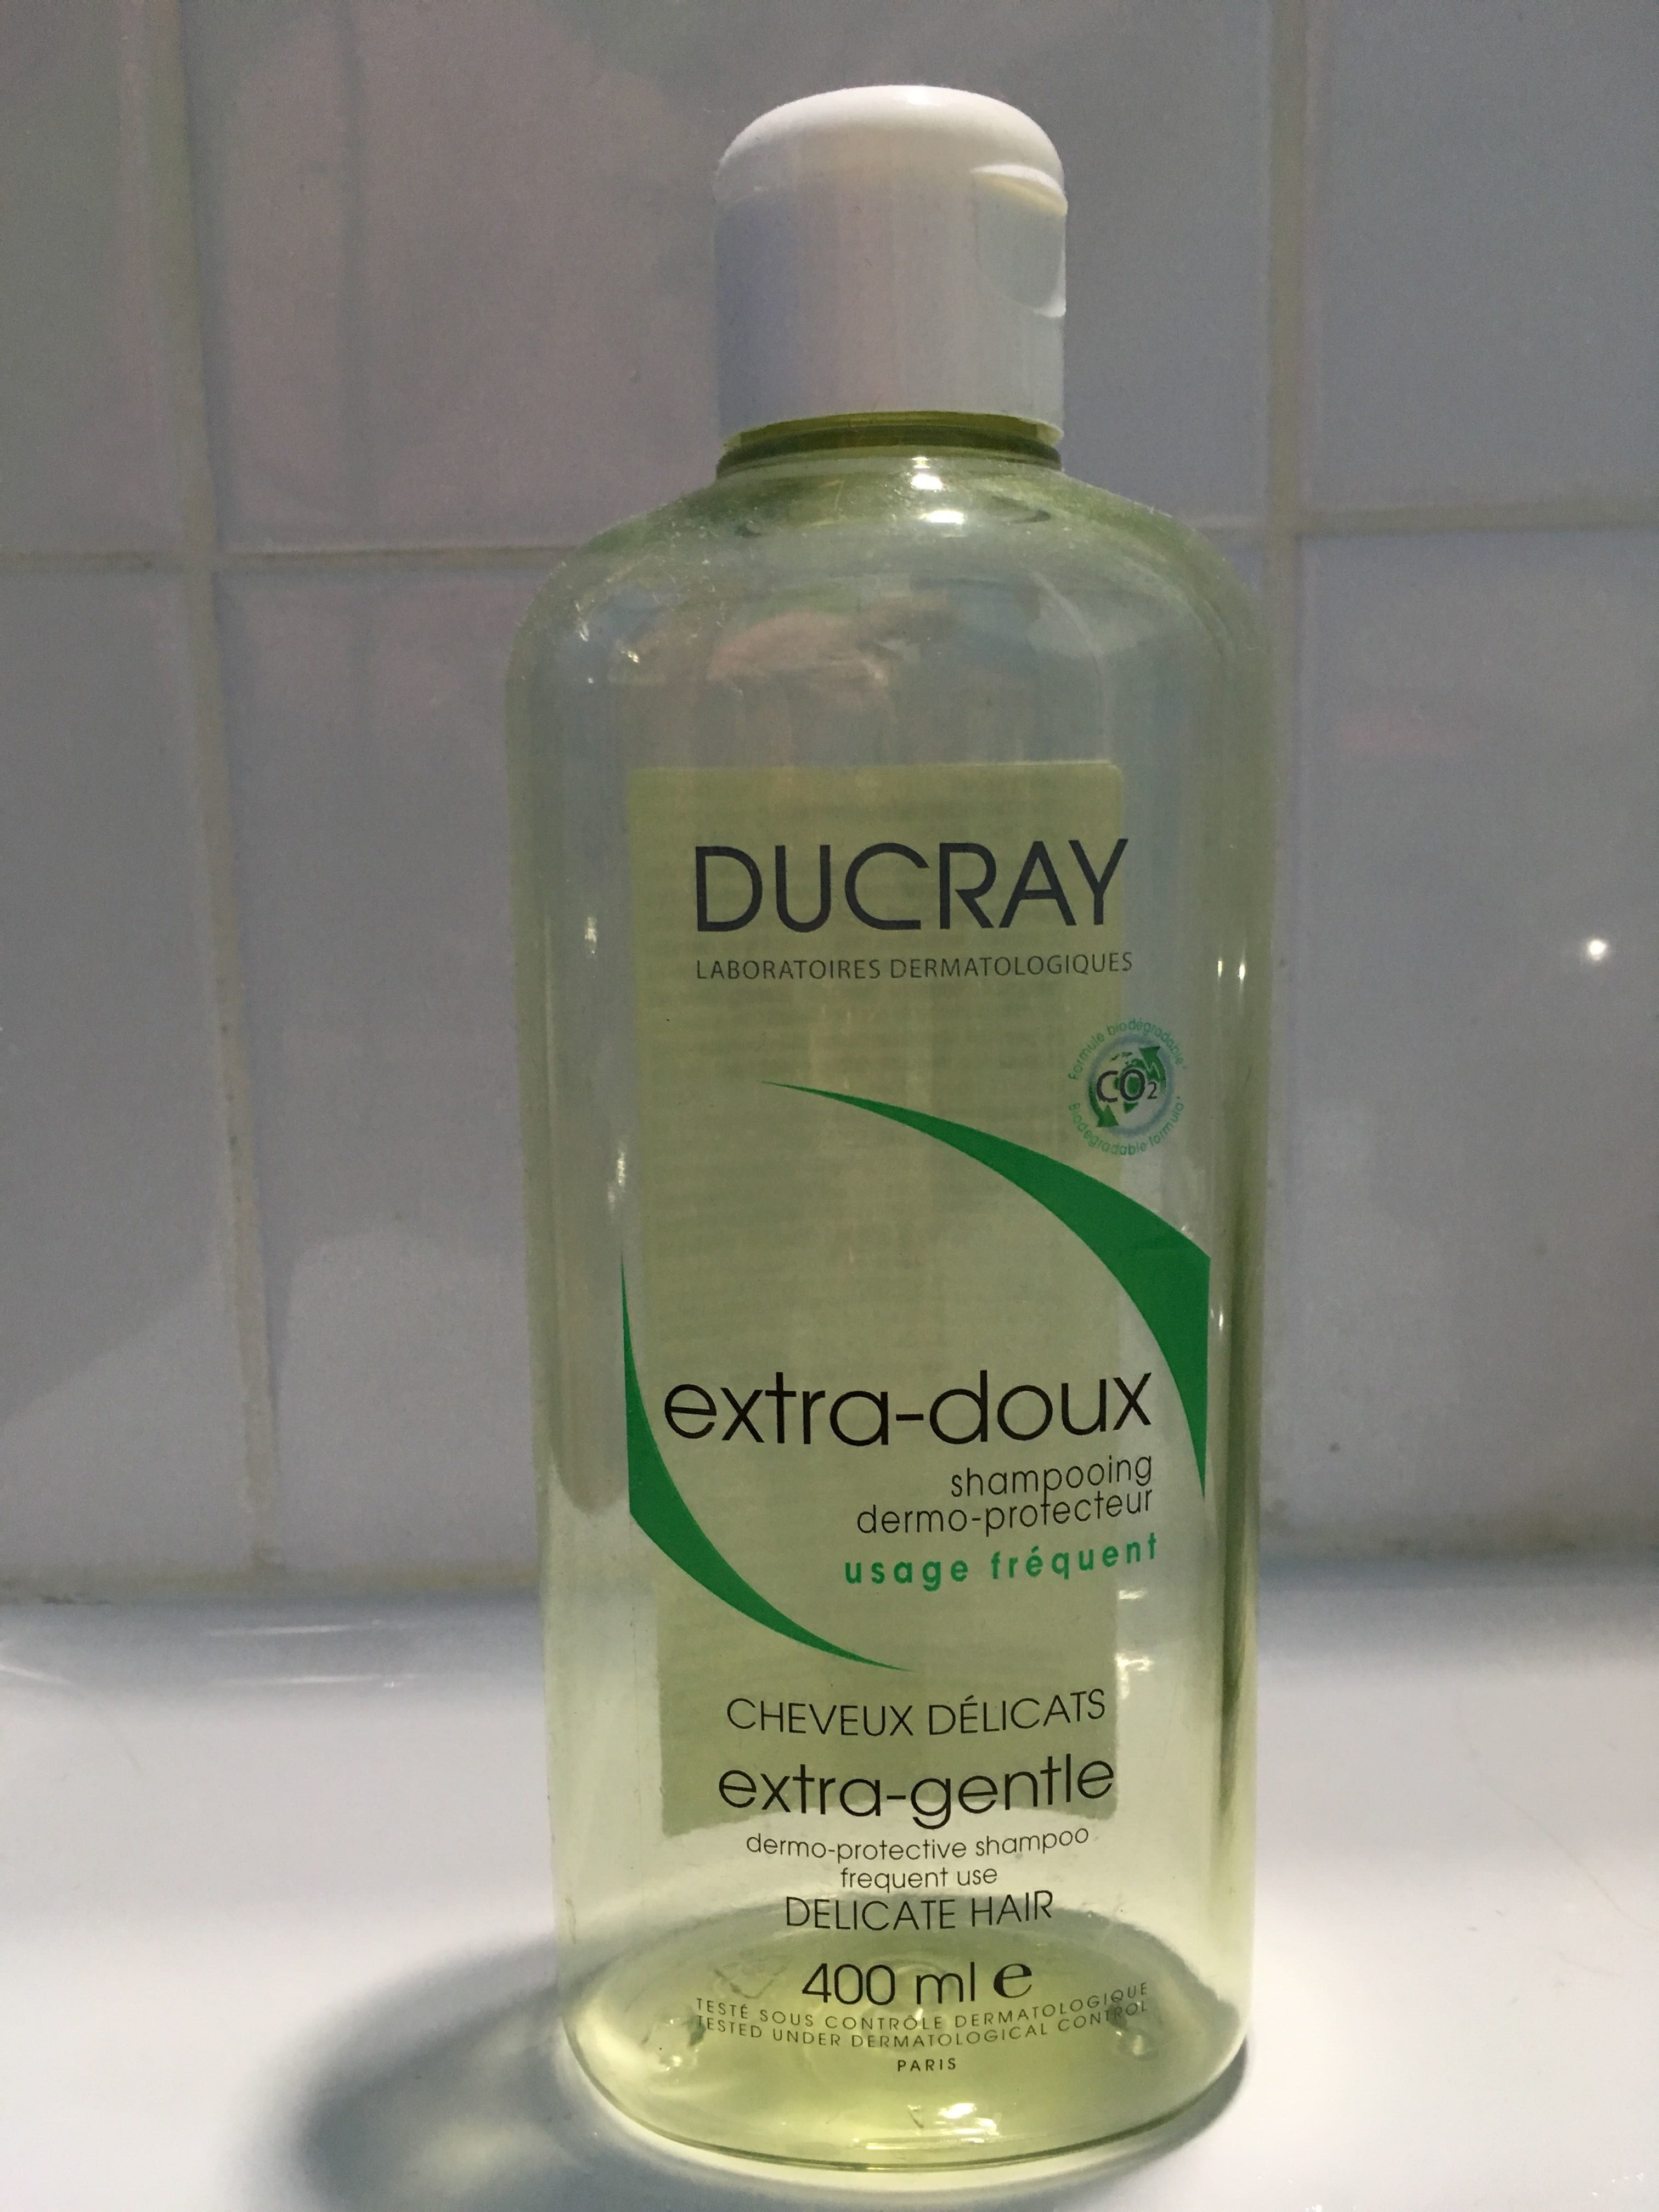 EXTRA DOUX Shampooing dermo protecteur - Product - fr